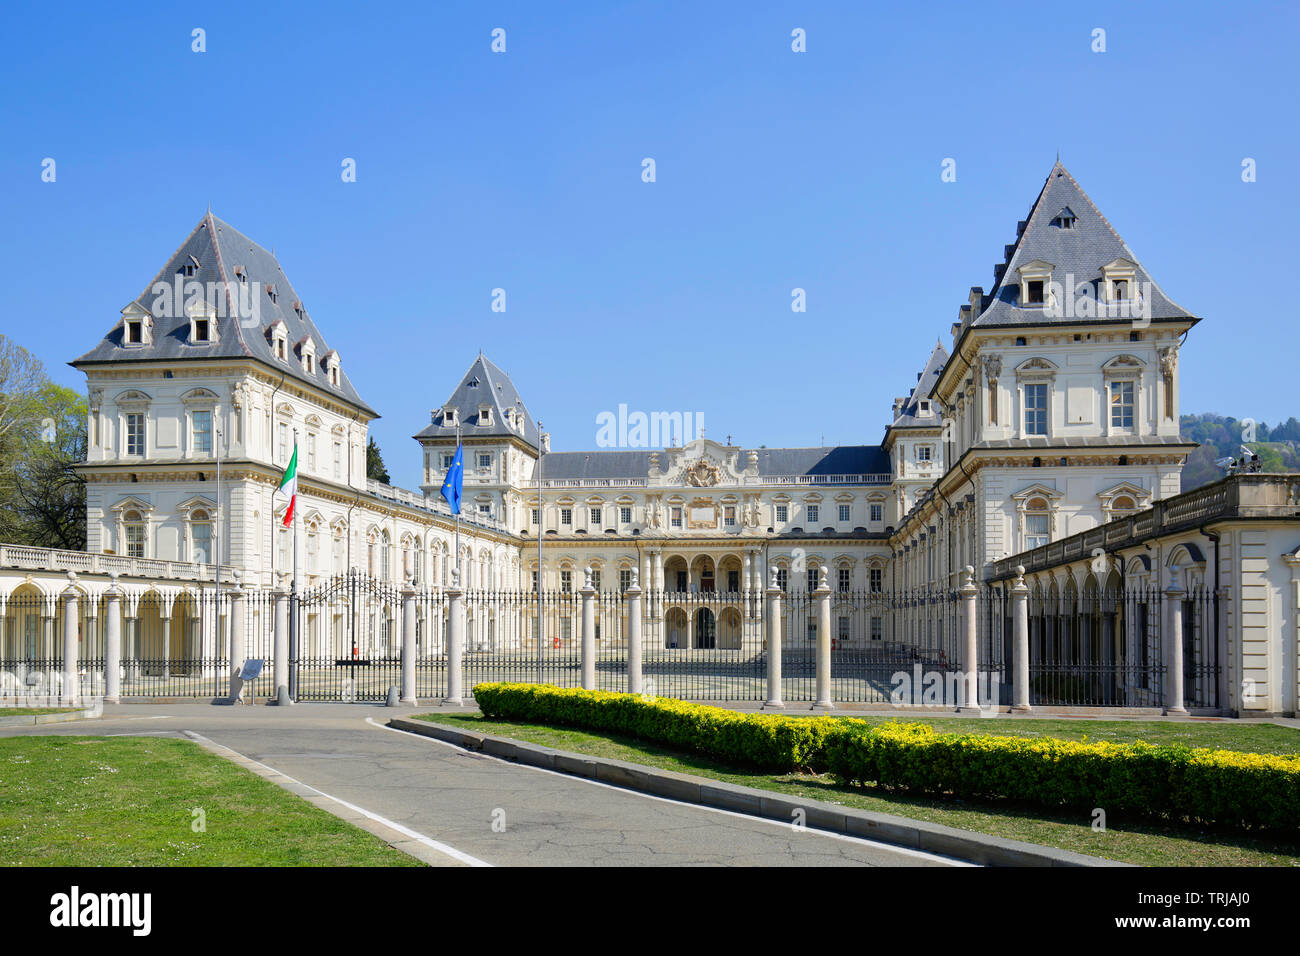 TURIN, ITALY - MARCH 31, 2019: Valentino castle in a sunny day, clear blue sky in Piedmont, Turin, Italy. Stock Photo